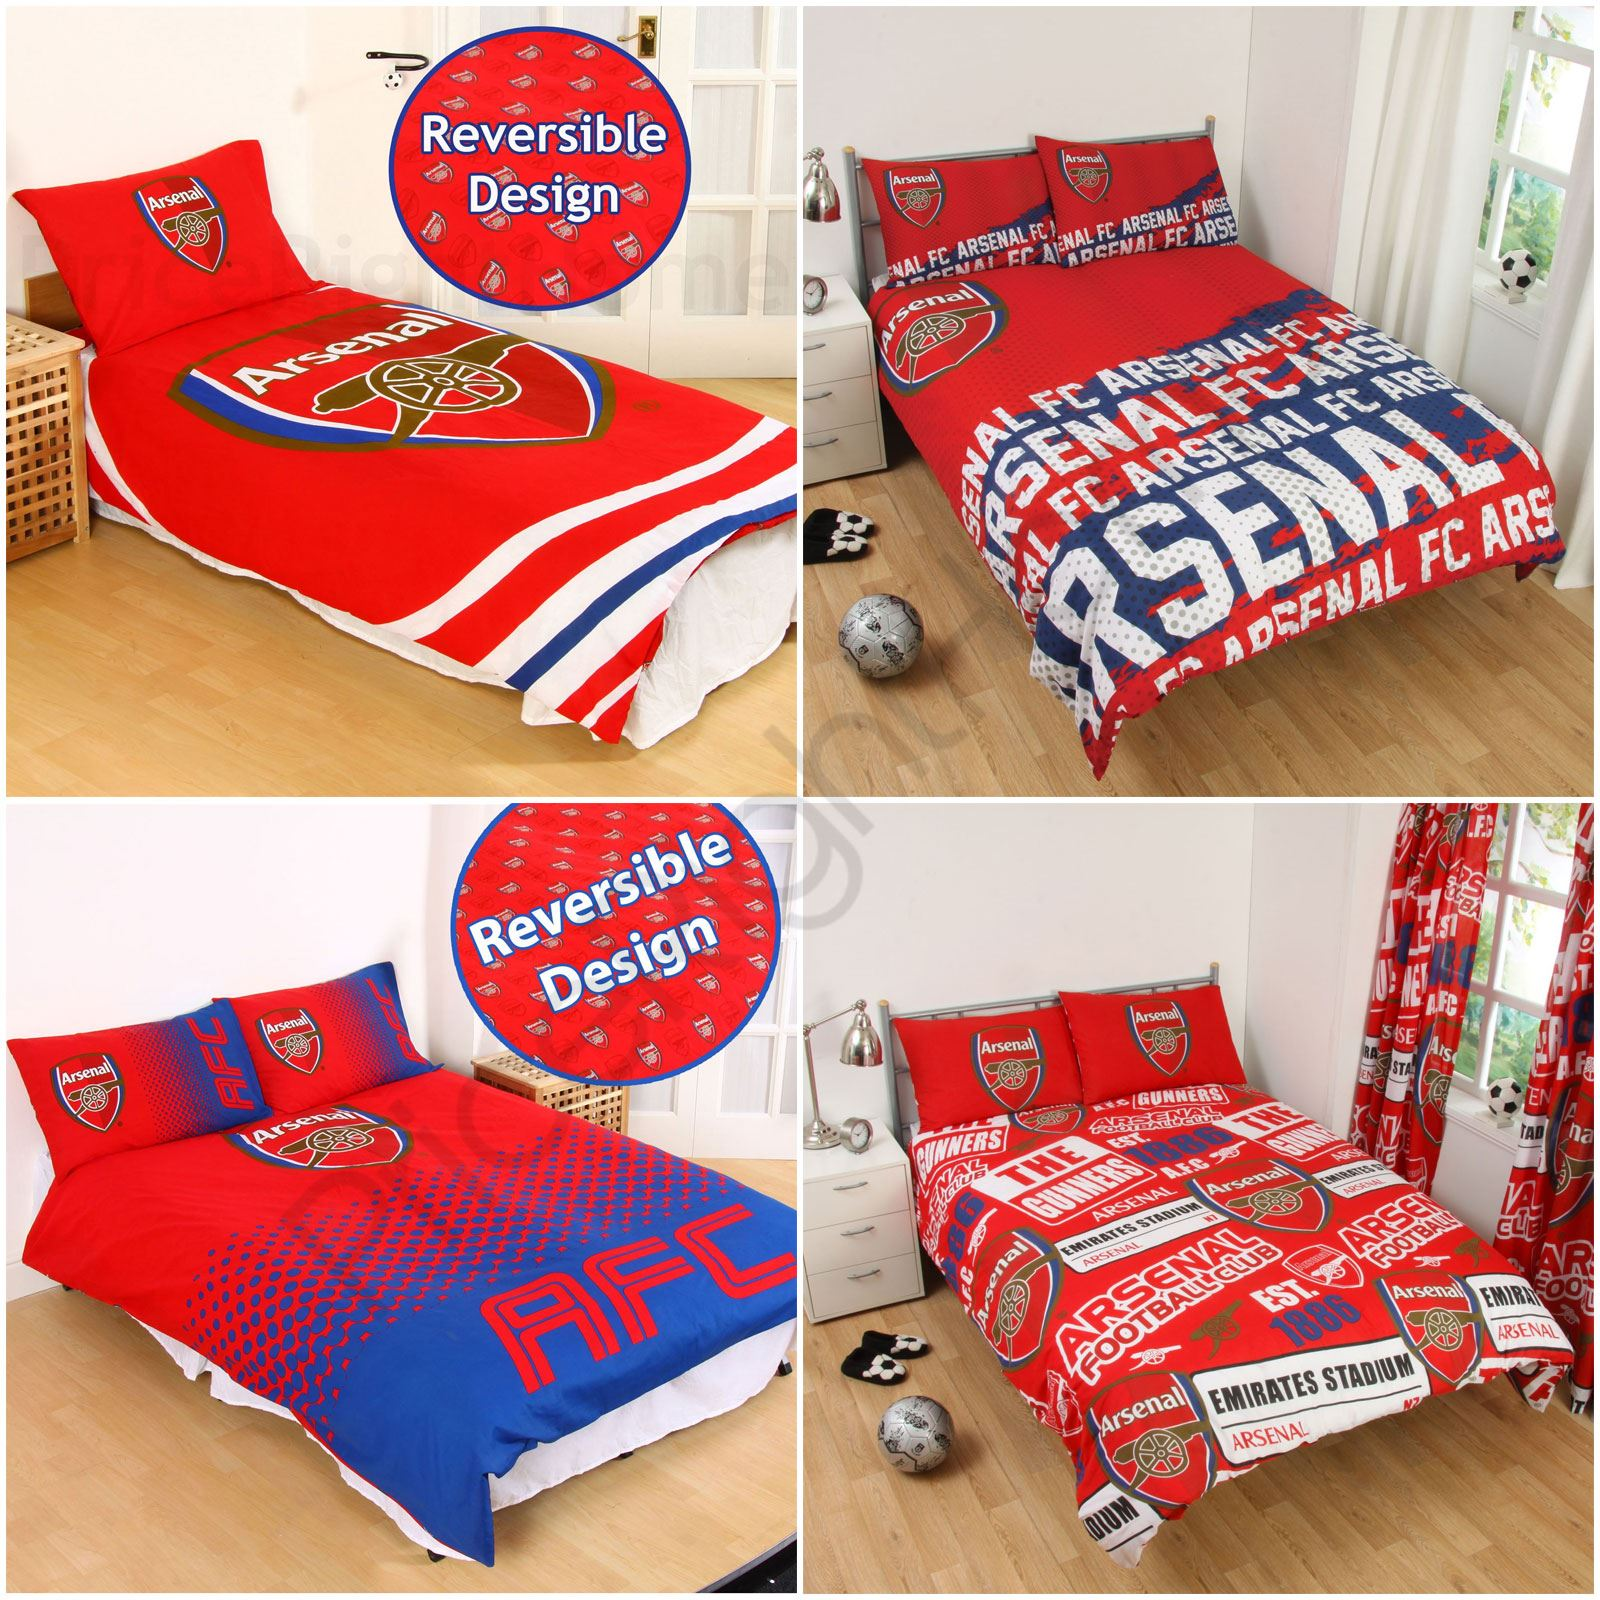 Newcastle United Bedroom Wallpaper Bedroom Decor Dark Wood Creative Apartment Bedroom Quirky Bedroom Furniture: ARSENAL FC SINGLE AND DOUBLE DUVET COVER SETS BEDROOM